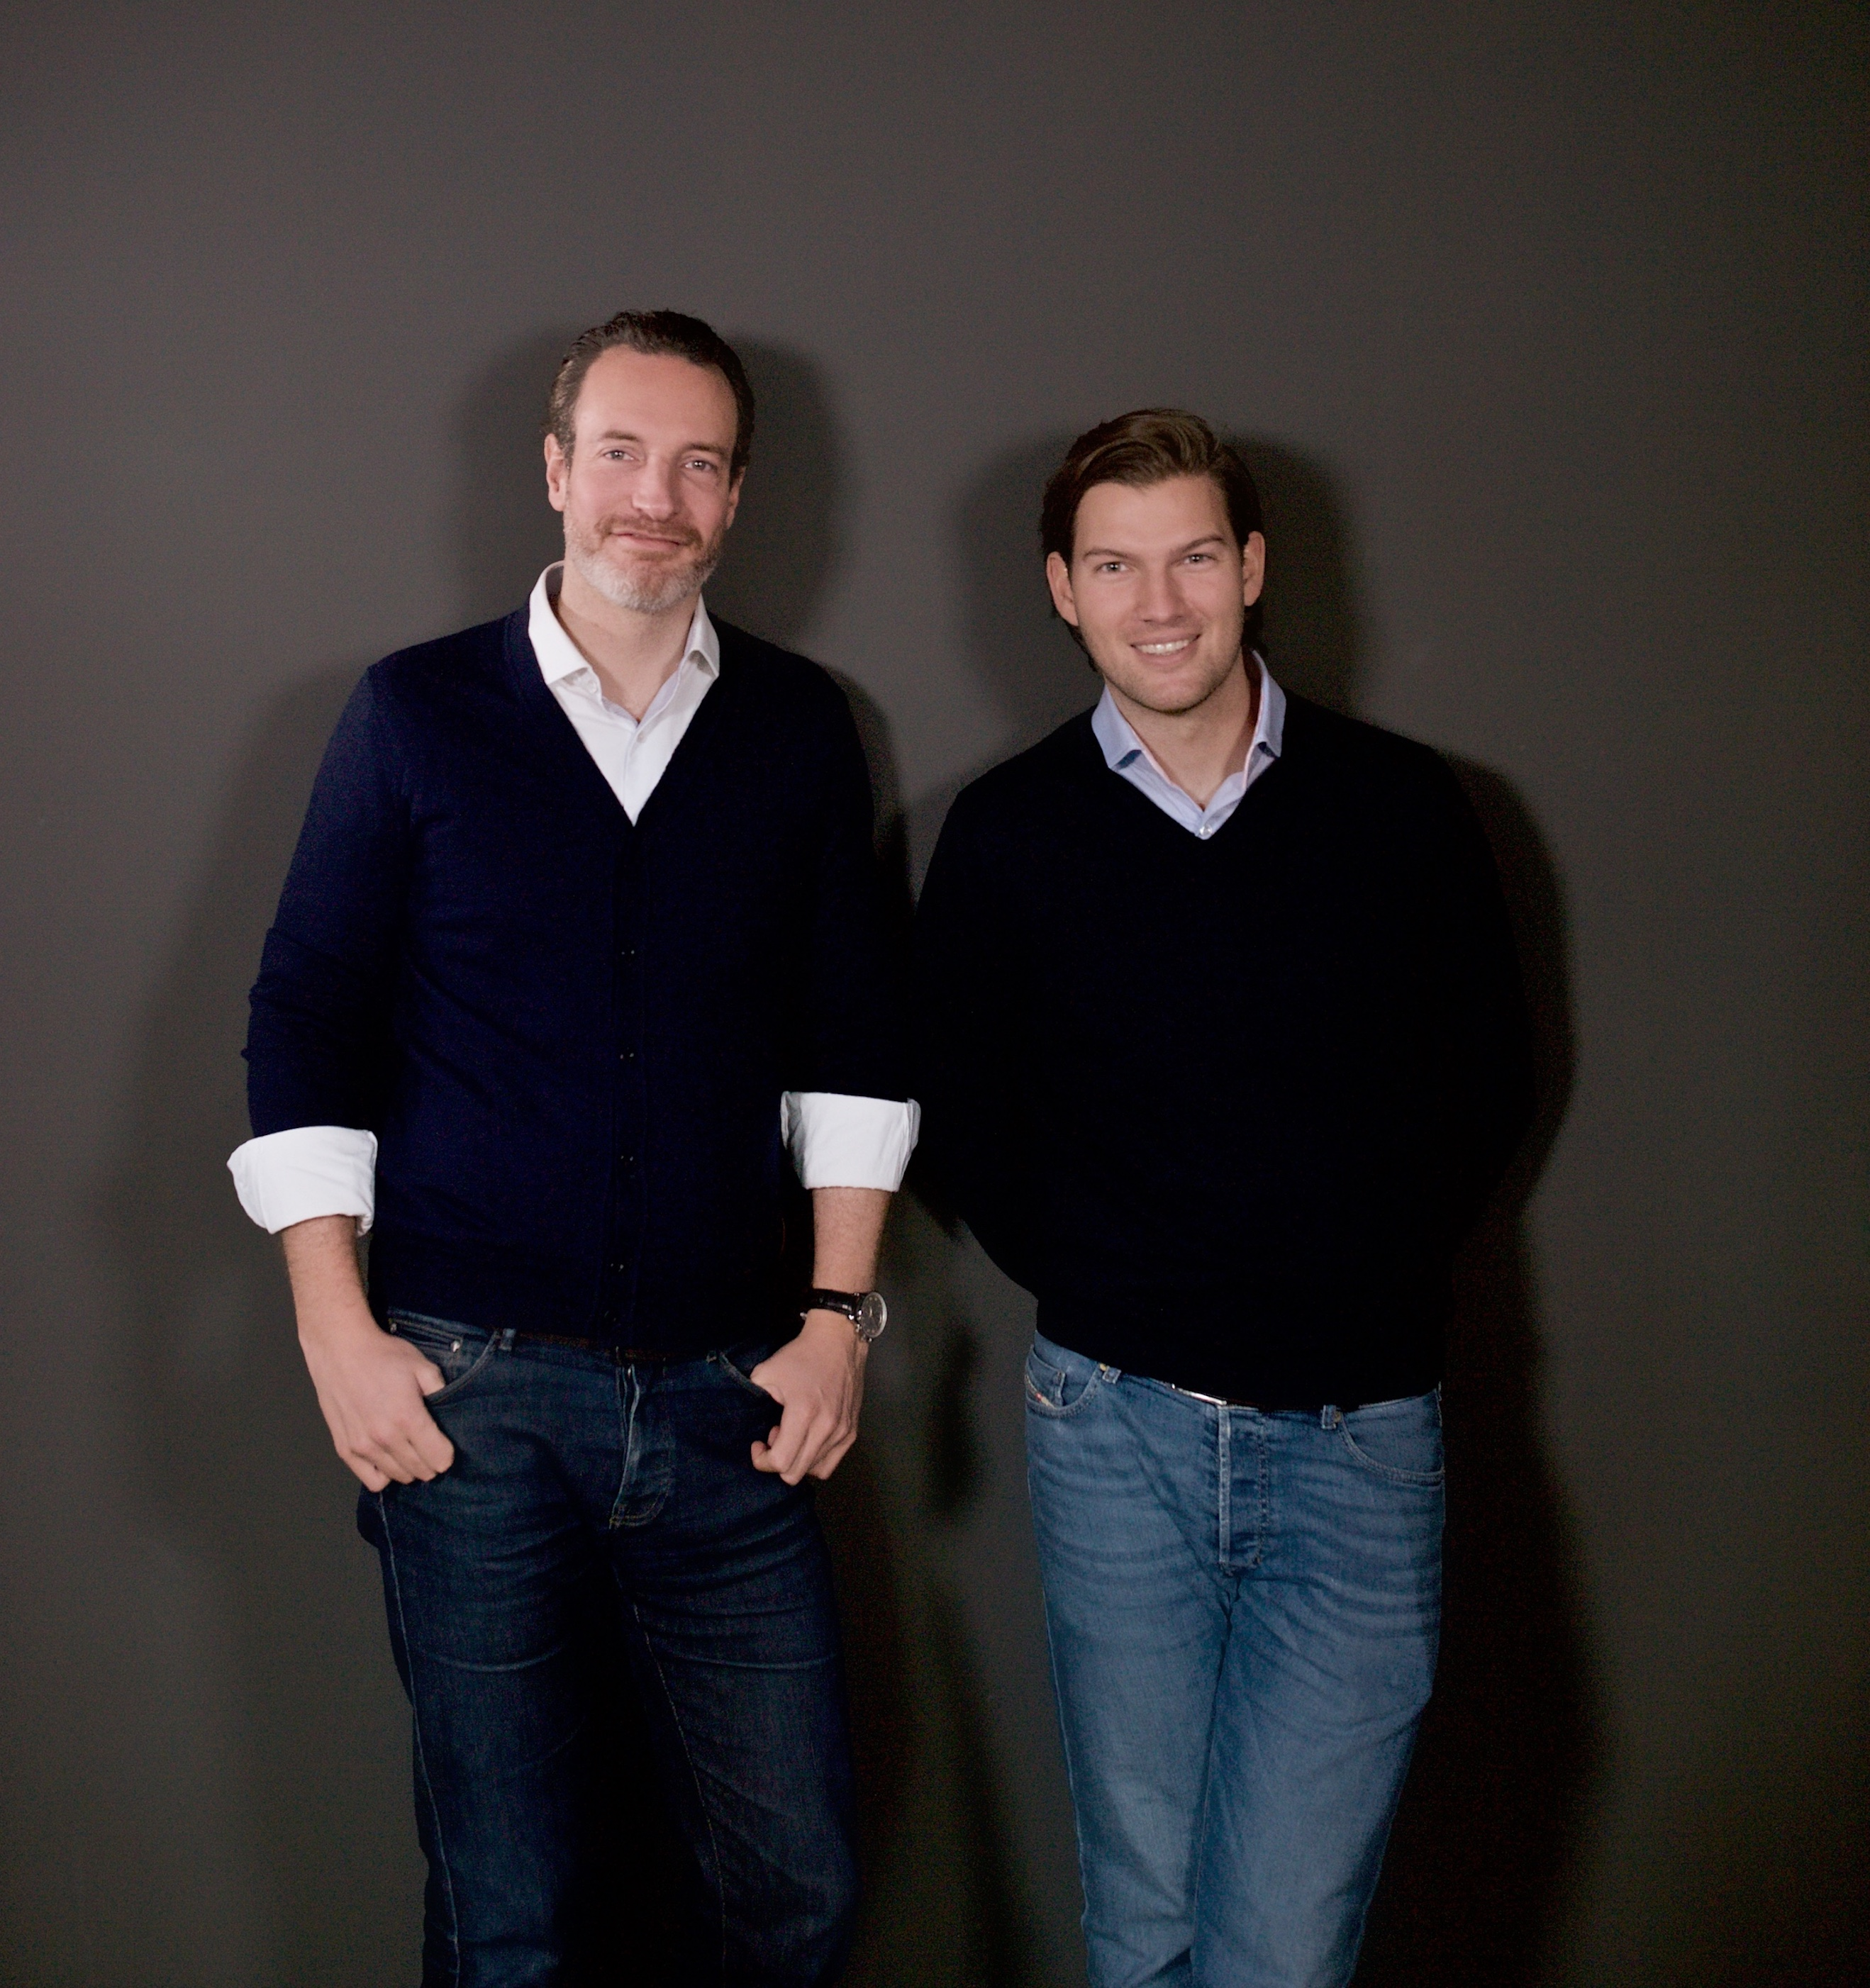 N26 Press Image of our Founders Maximilian Tayenthal and Valentin Stalf